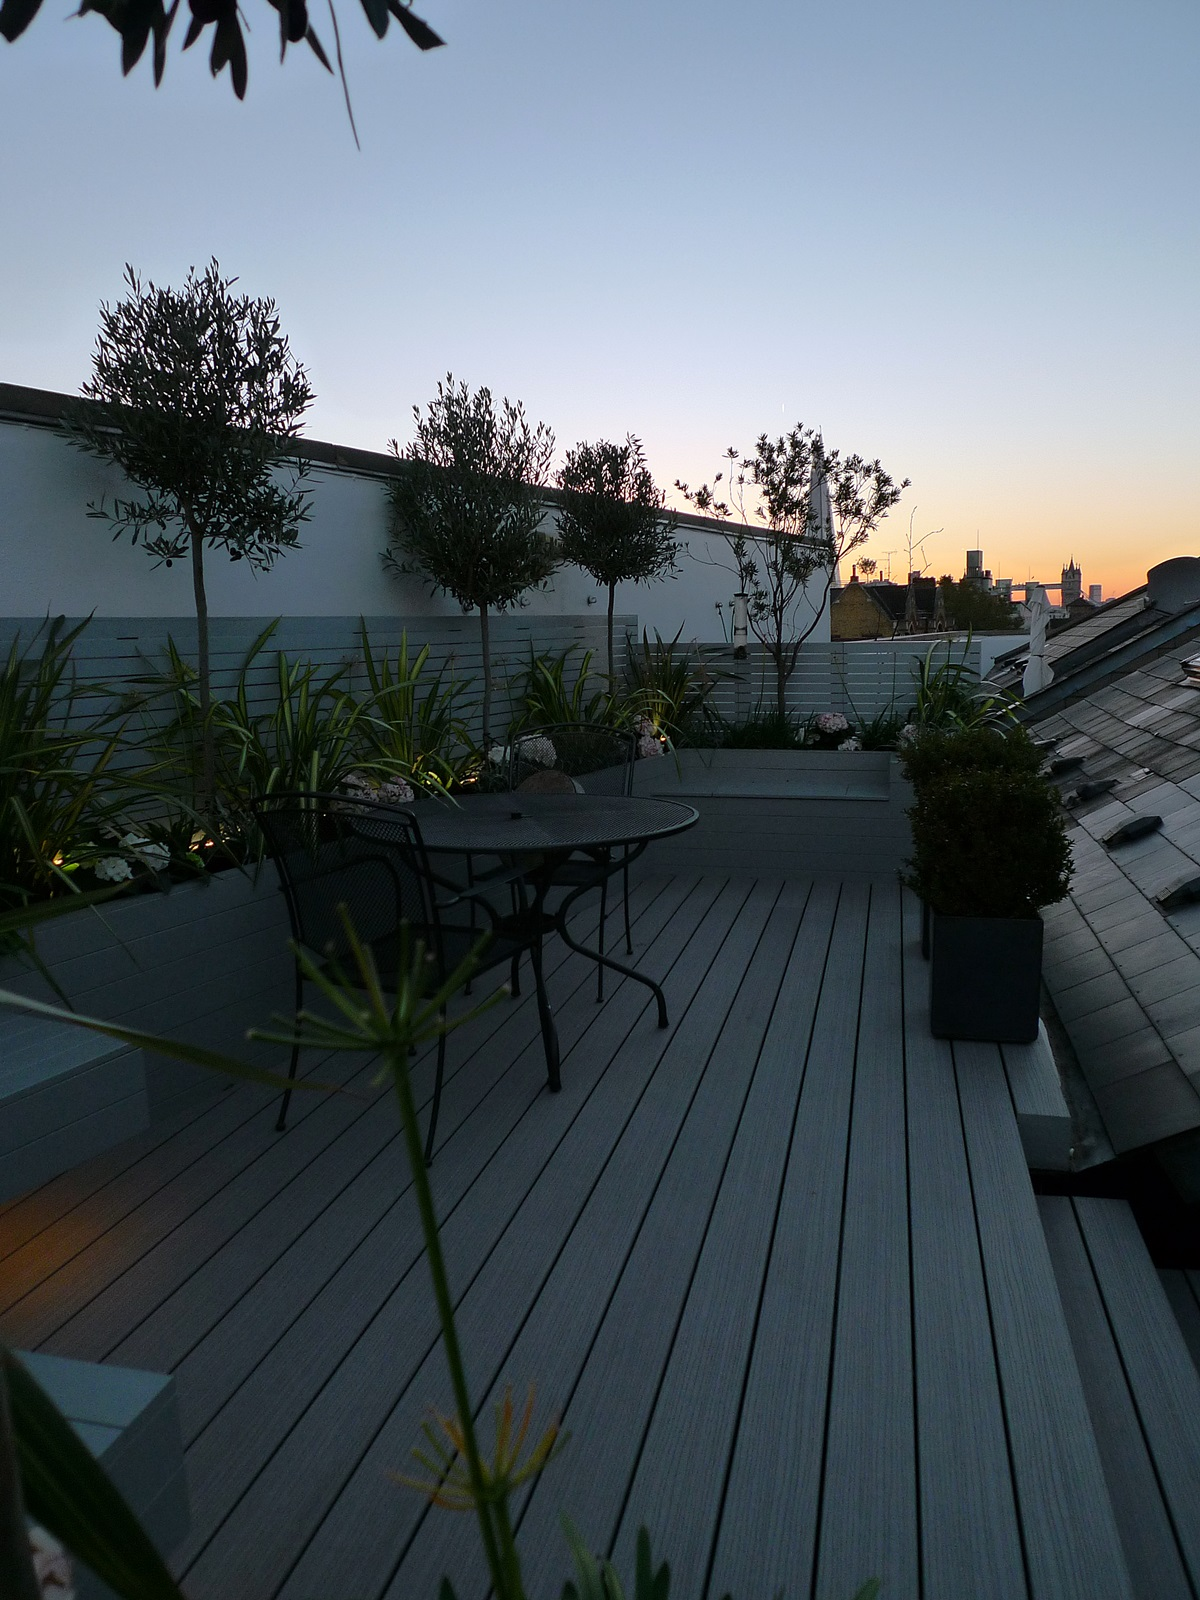 roof garden design london composite decking hardwood painted planters battersea tower bridge chelsea fulham putney london